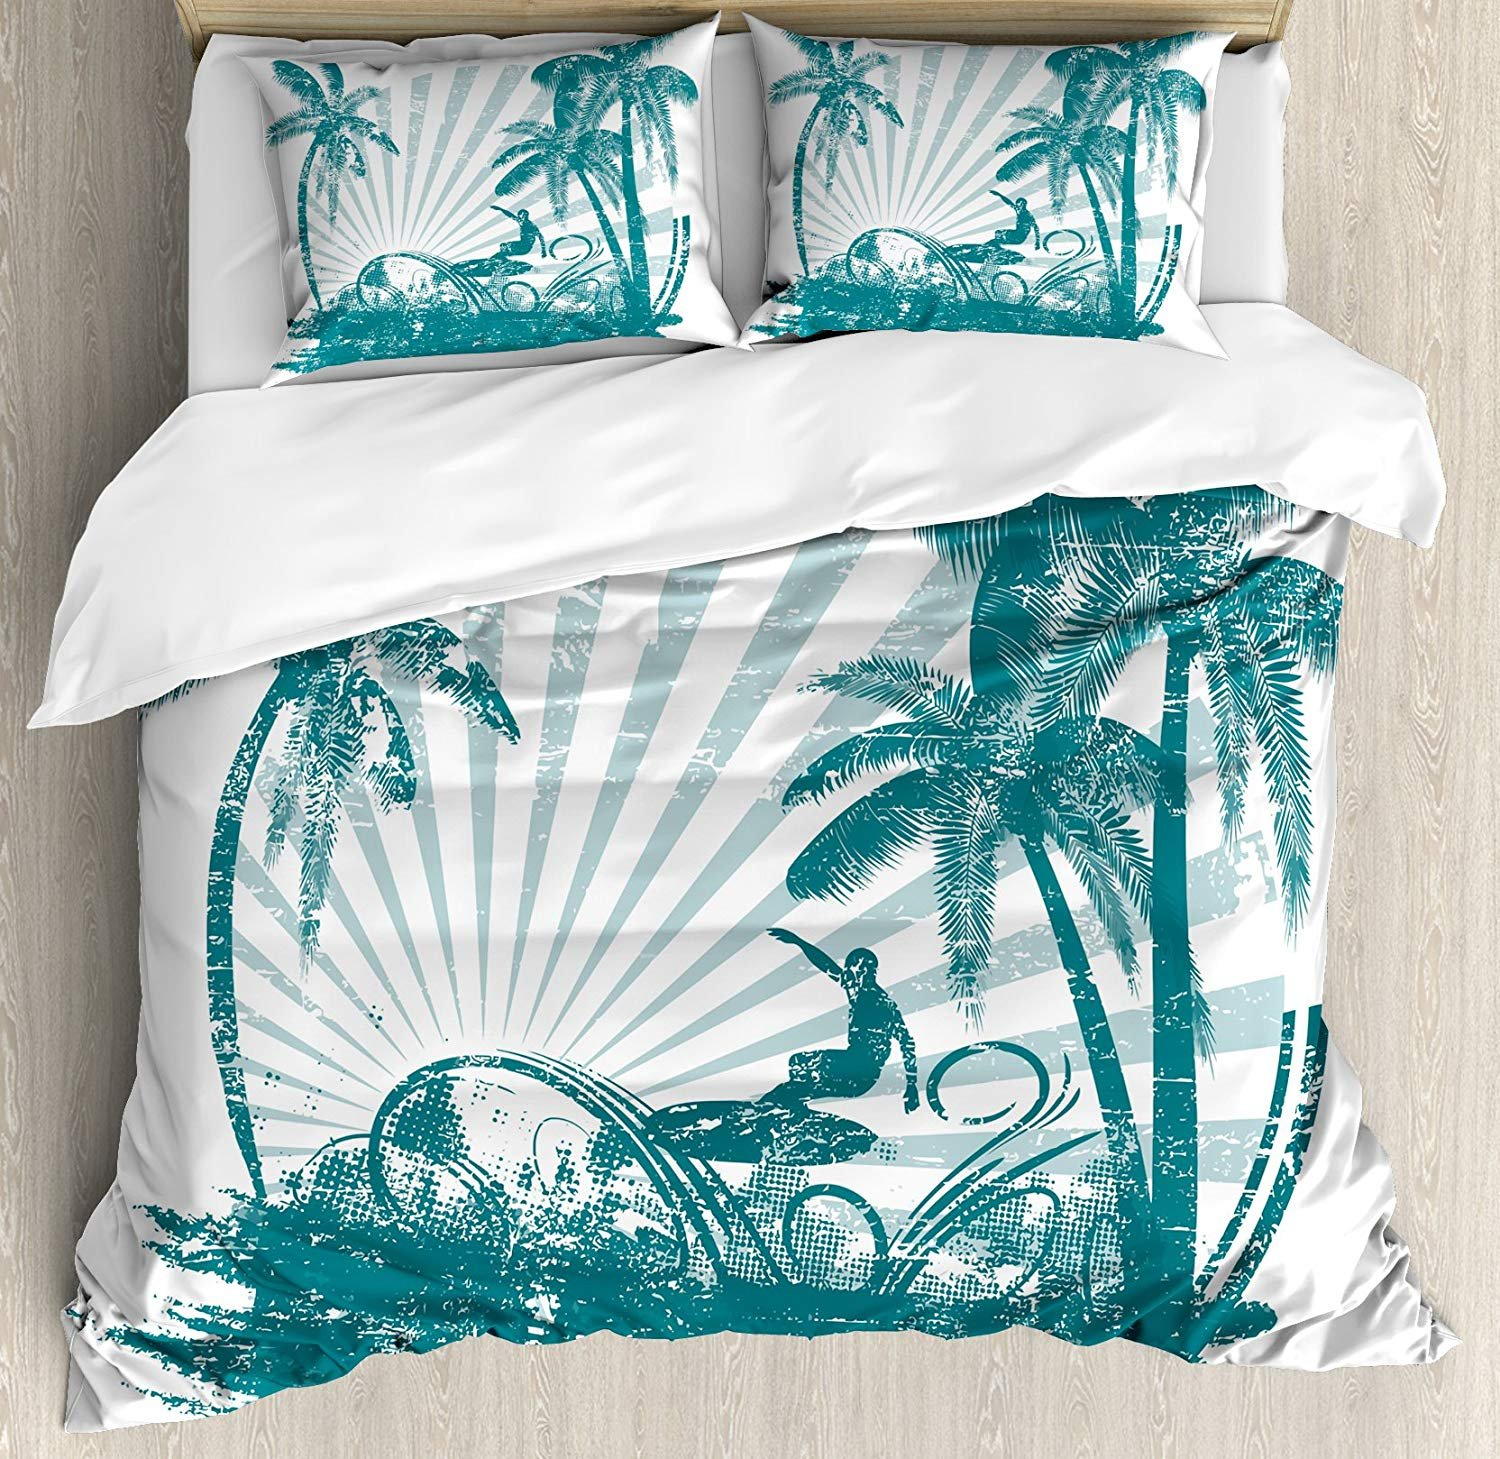 Twin XL Extra Long Bedding Set, Ride The Wave Duvet Cover Set, Grunge Tropical Scene with Man Surfing Surreal Sports Adventure Illustration, Include 1 Flat Sheet 1 Duvet Cover and 2 Pillow Cases